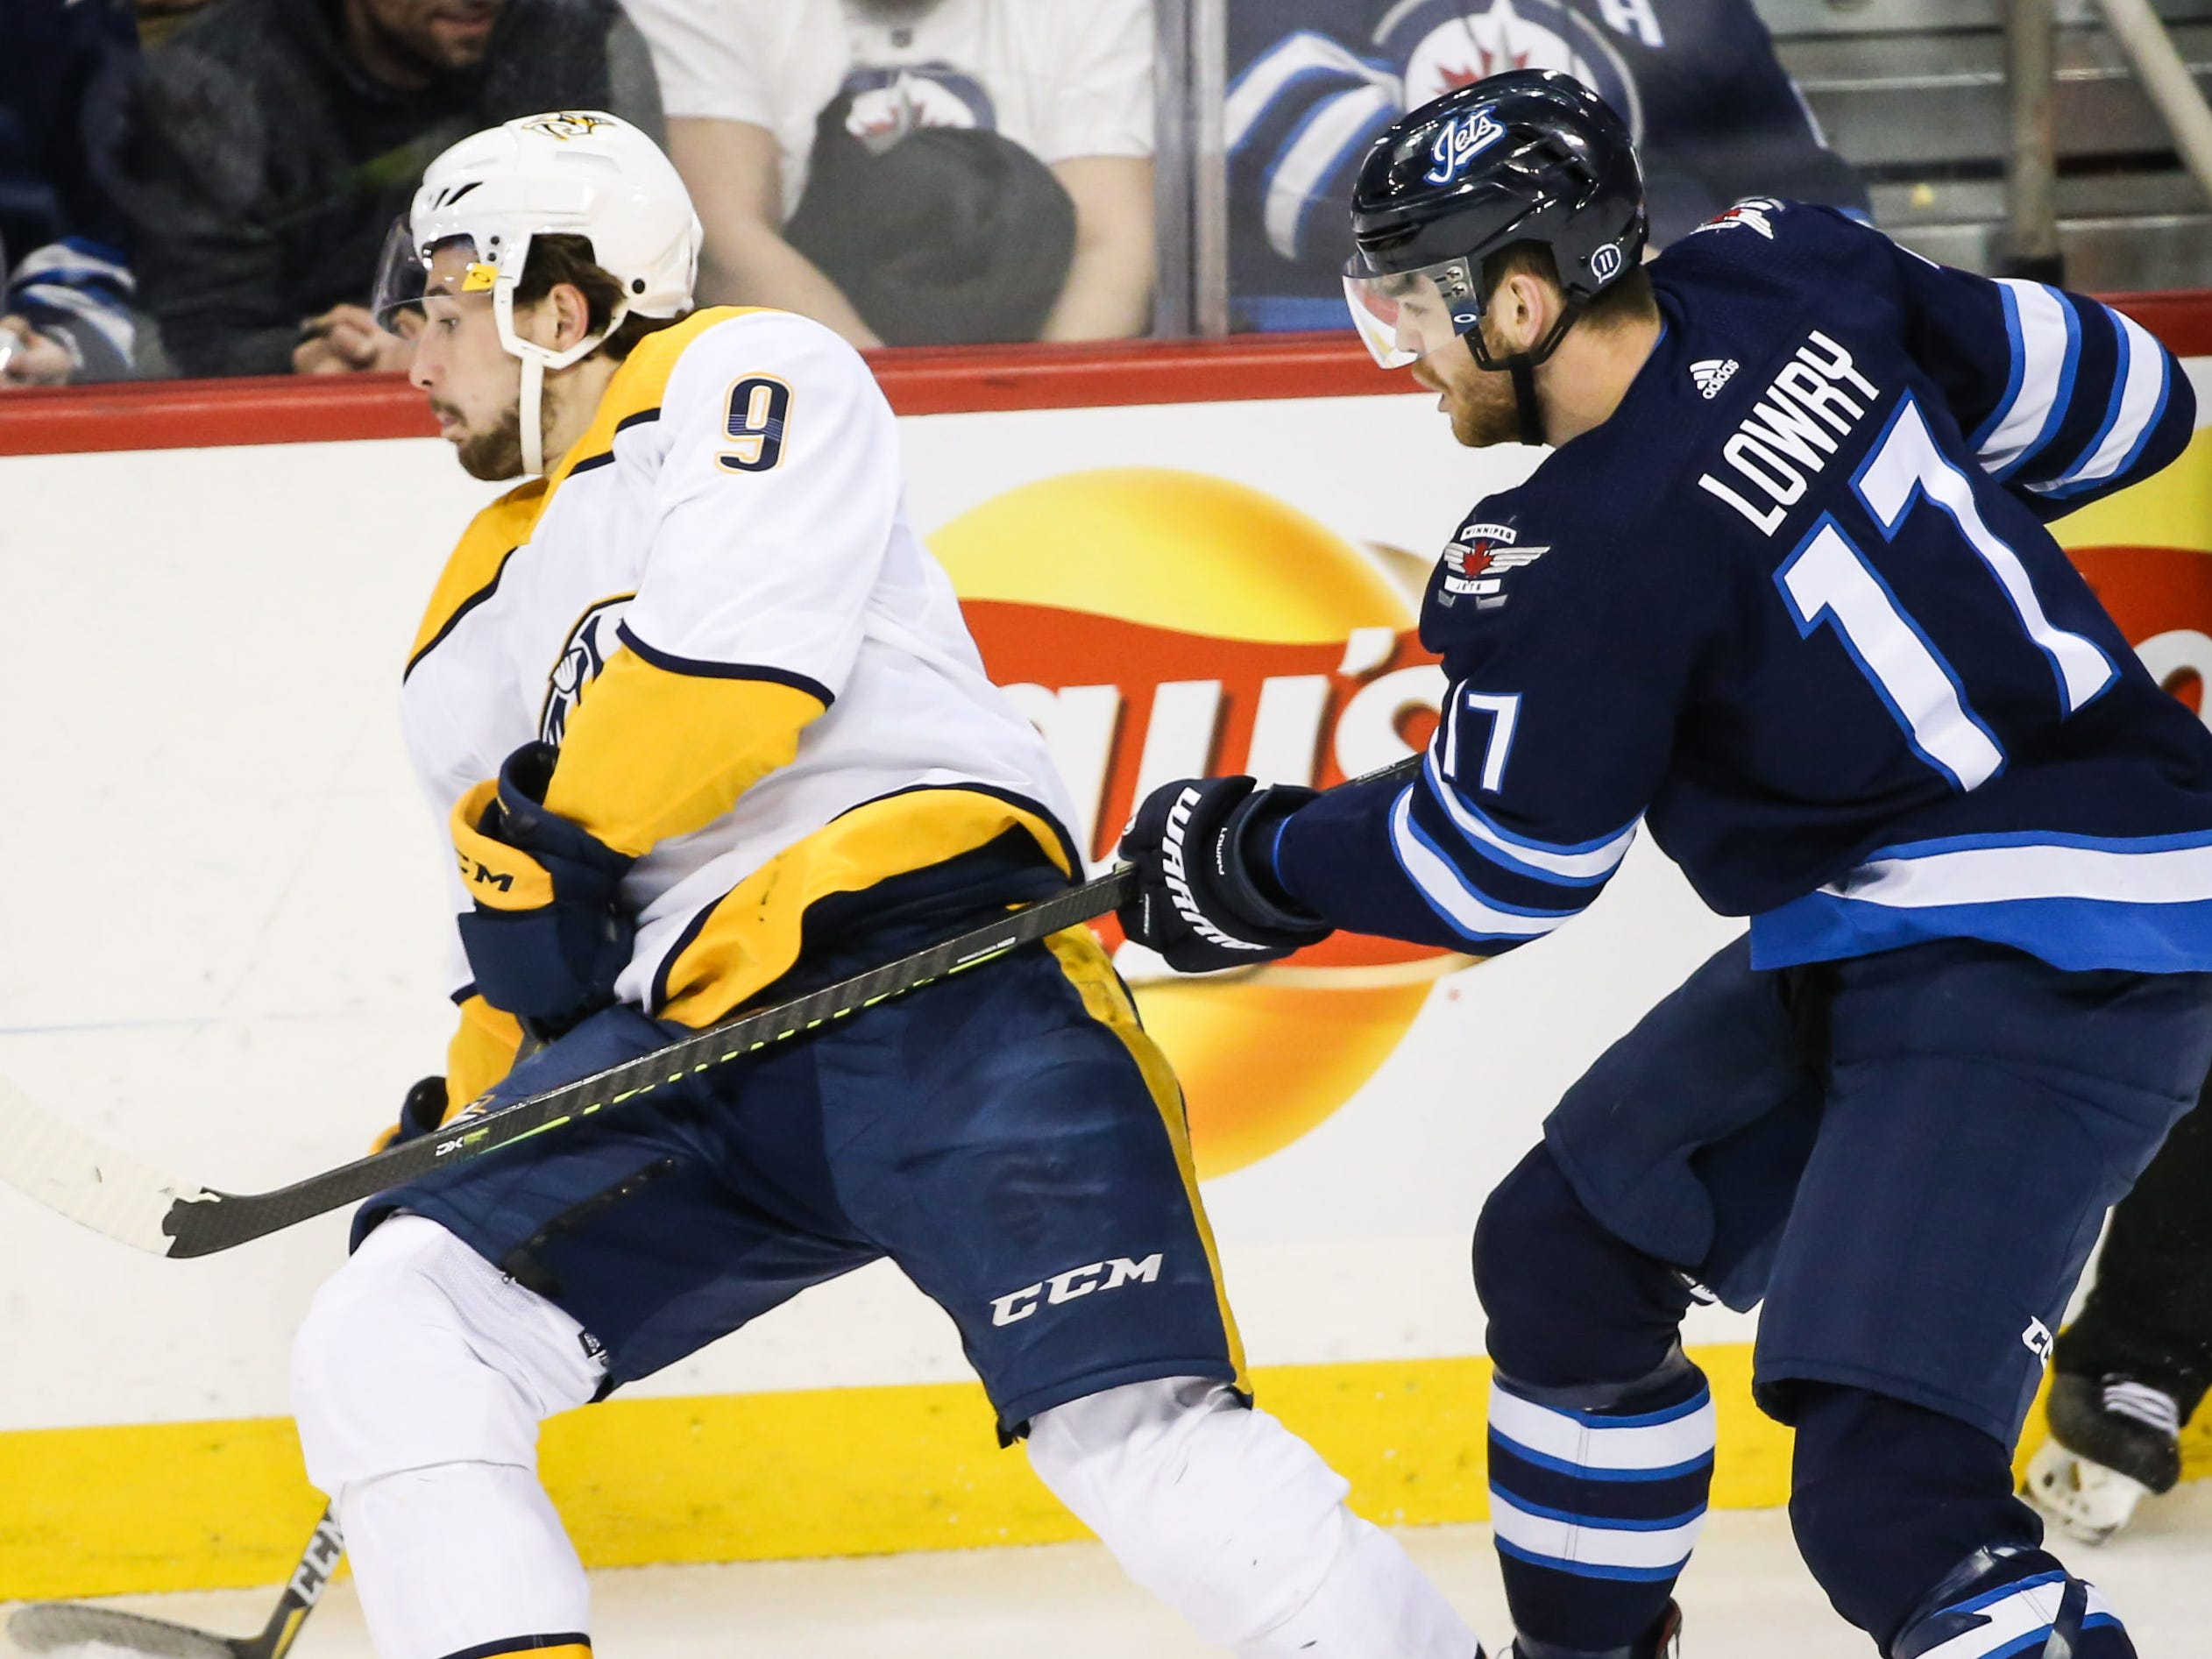 March 2: Winnipeg Jets forward Adam Lowry was suspended two games for high-sticking Nashville Predators forward Filip Forsberg. Lost pay: $31,362.00.